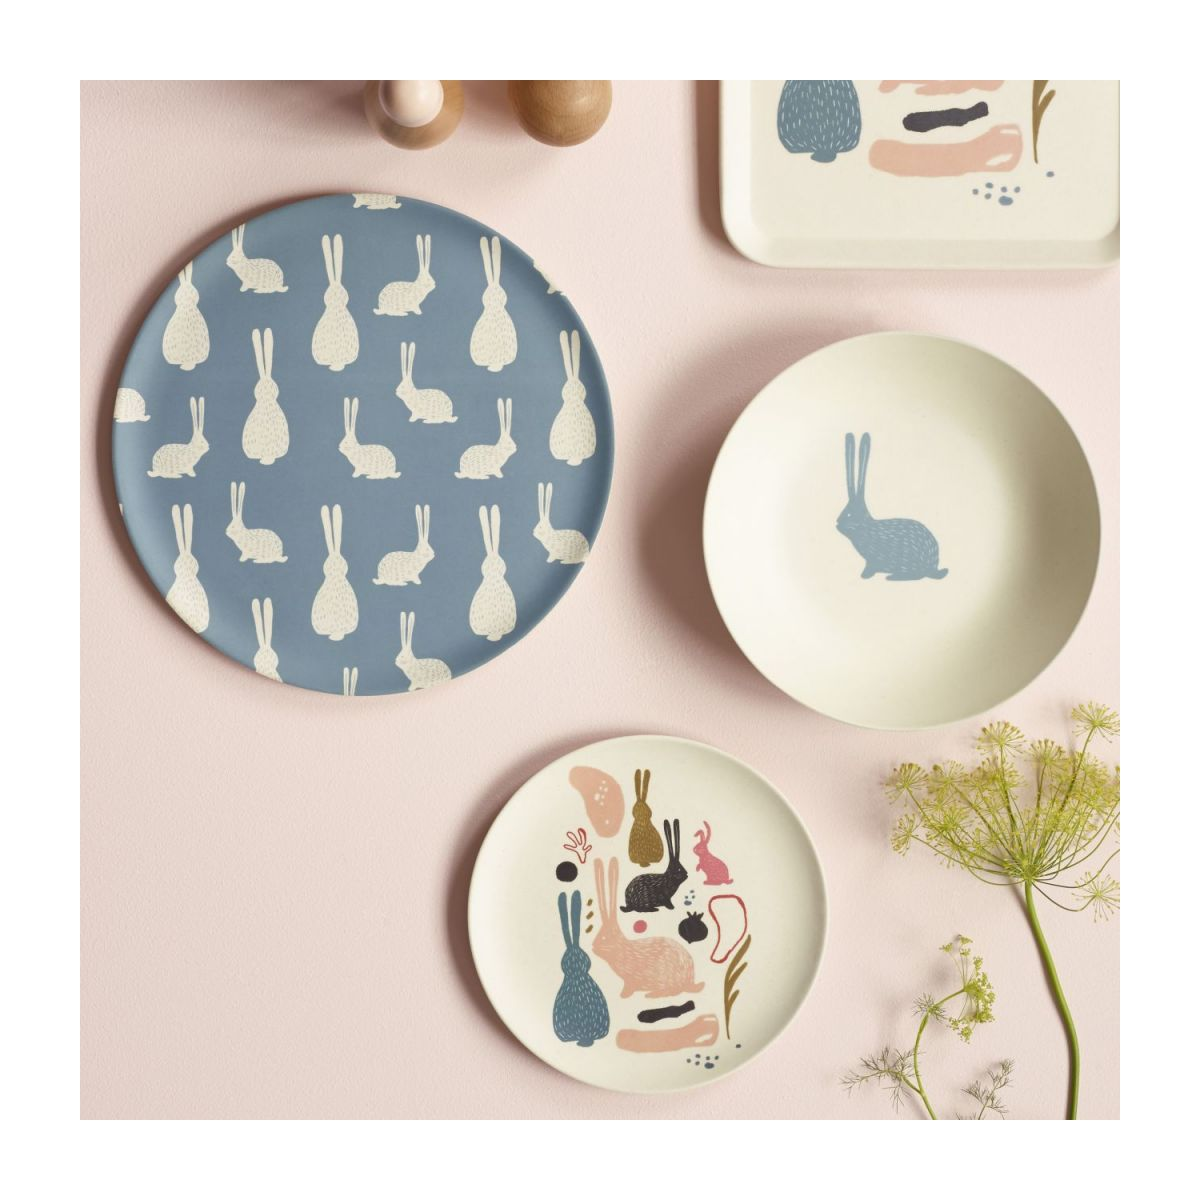 Soup plate with bunny patterns n°4